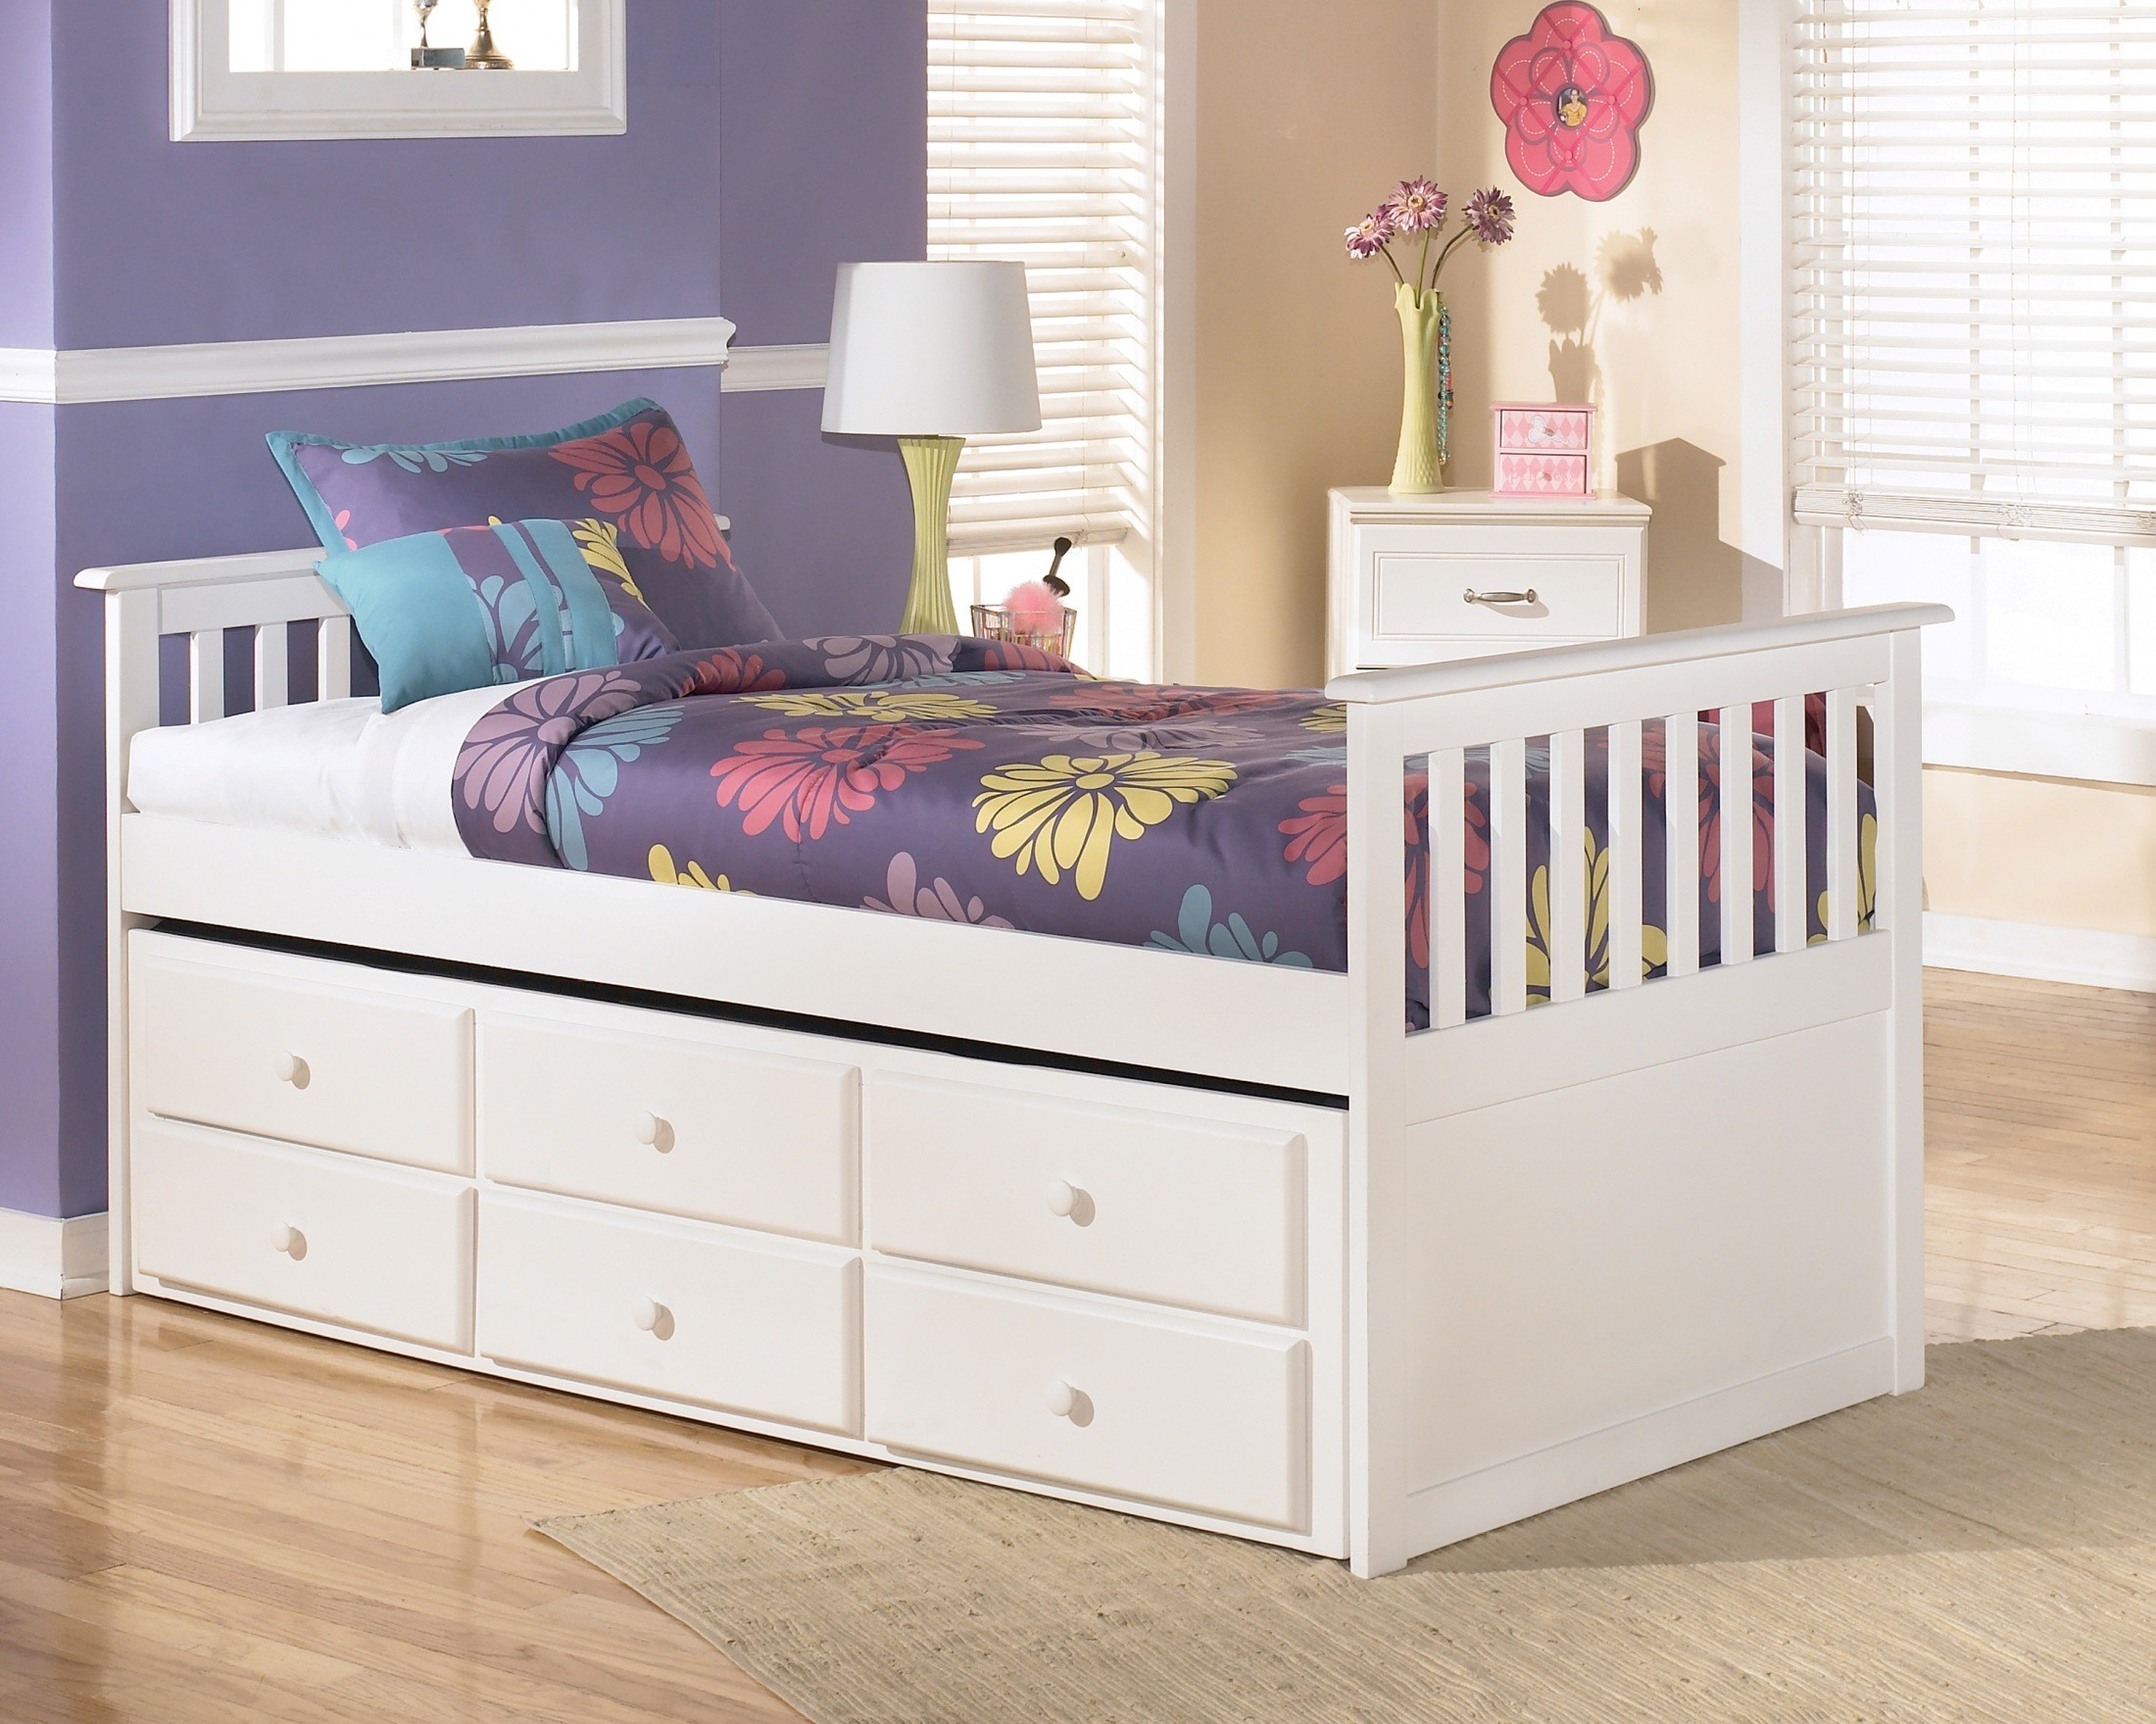 Lulu Twin Storage Bed With Super Trundle From Ashley B102 53 50t 50d 83 Coleman Furniture